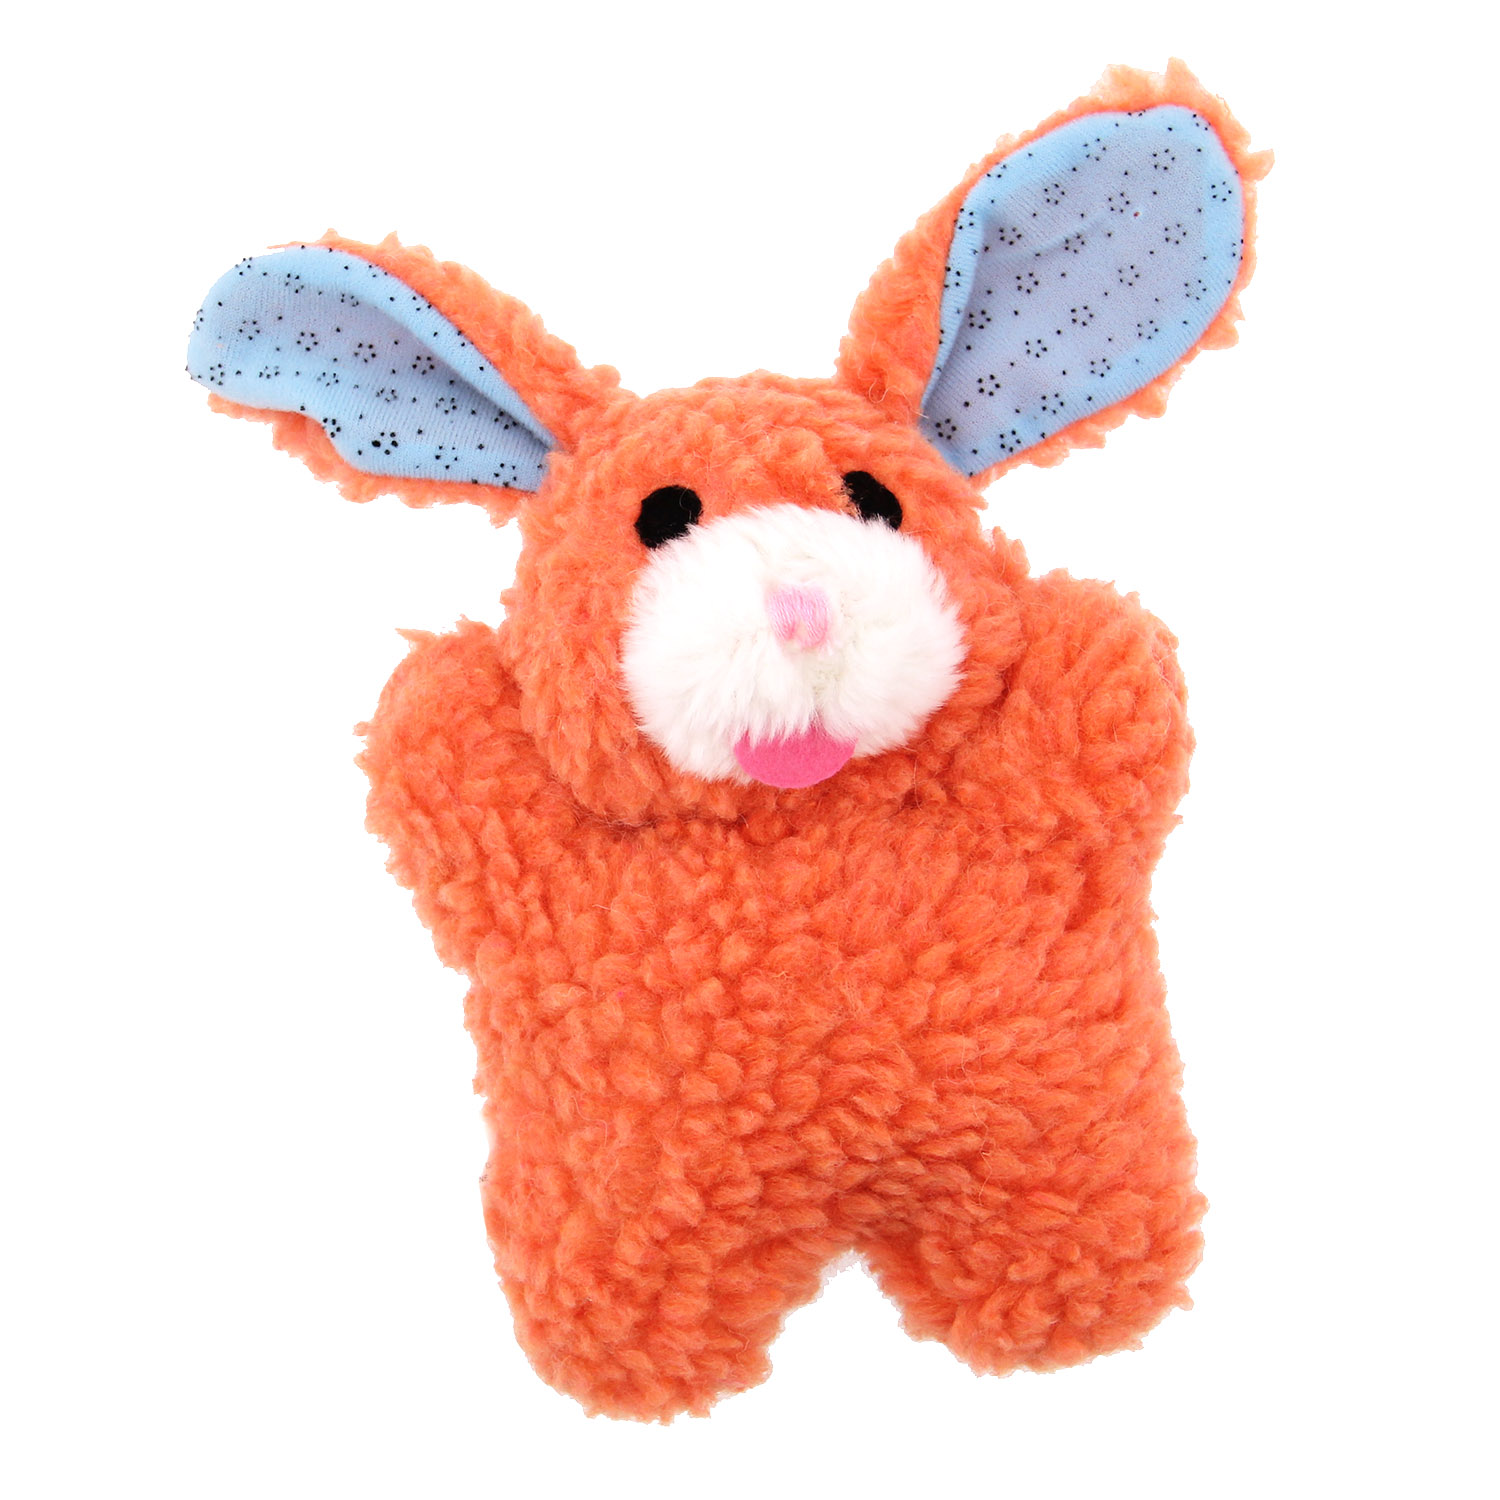 Zanies Cuddly Berber Babies Dog Toy - Orange Bunny